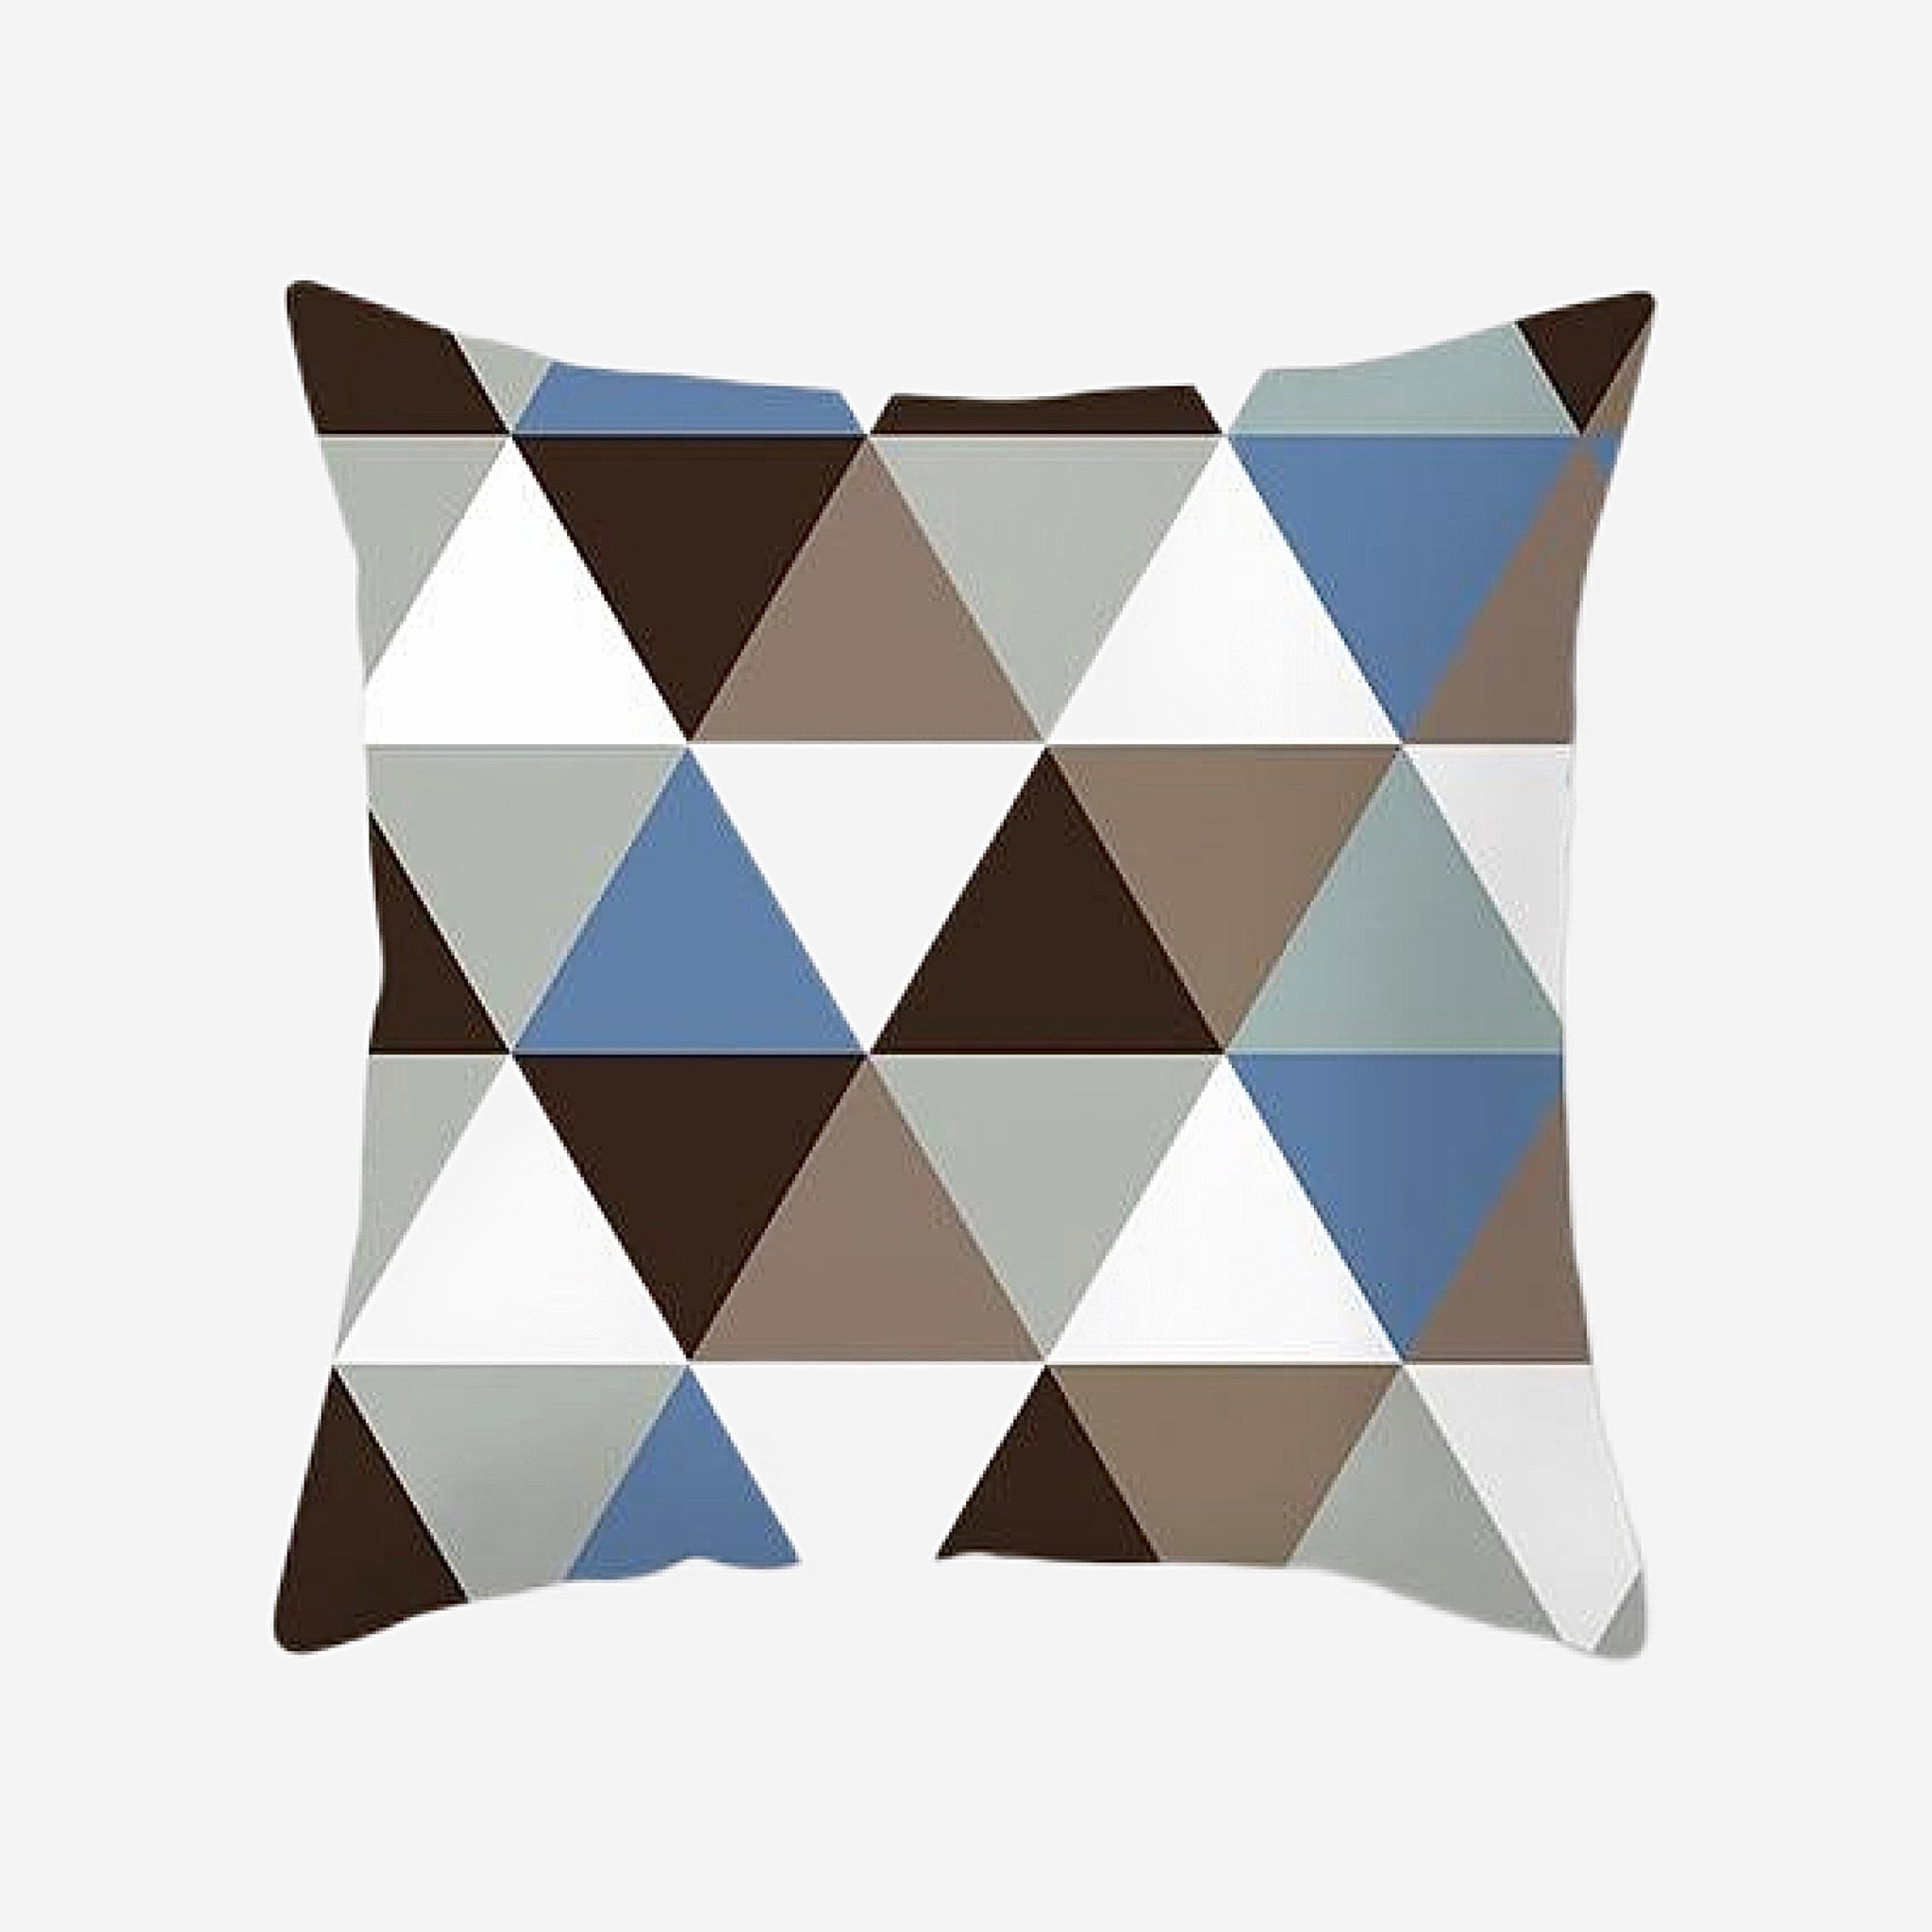 Elegant Geometric Cushion Cover   Triangular Cotton Polyester Peachskin Pillow Case Covers for Home Sofa Decoration Trend